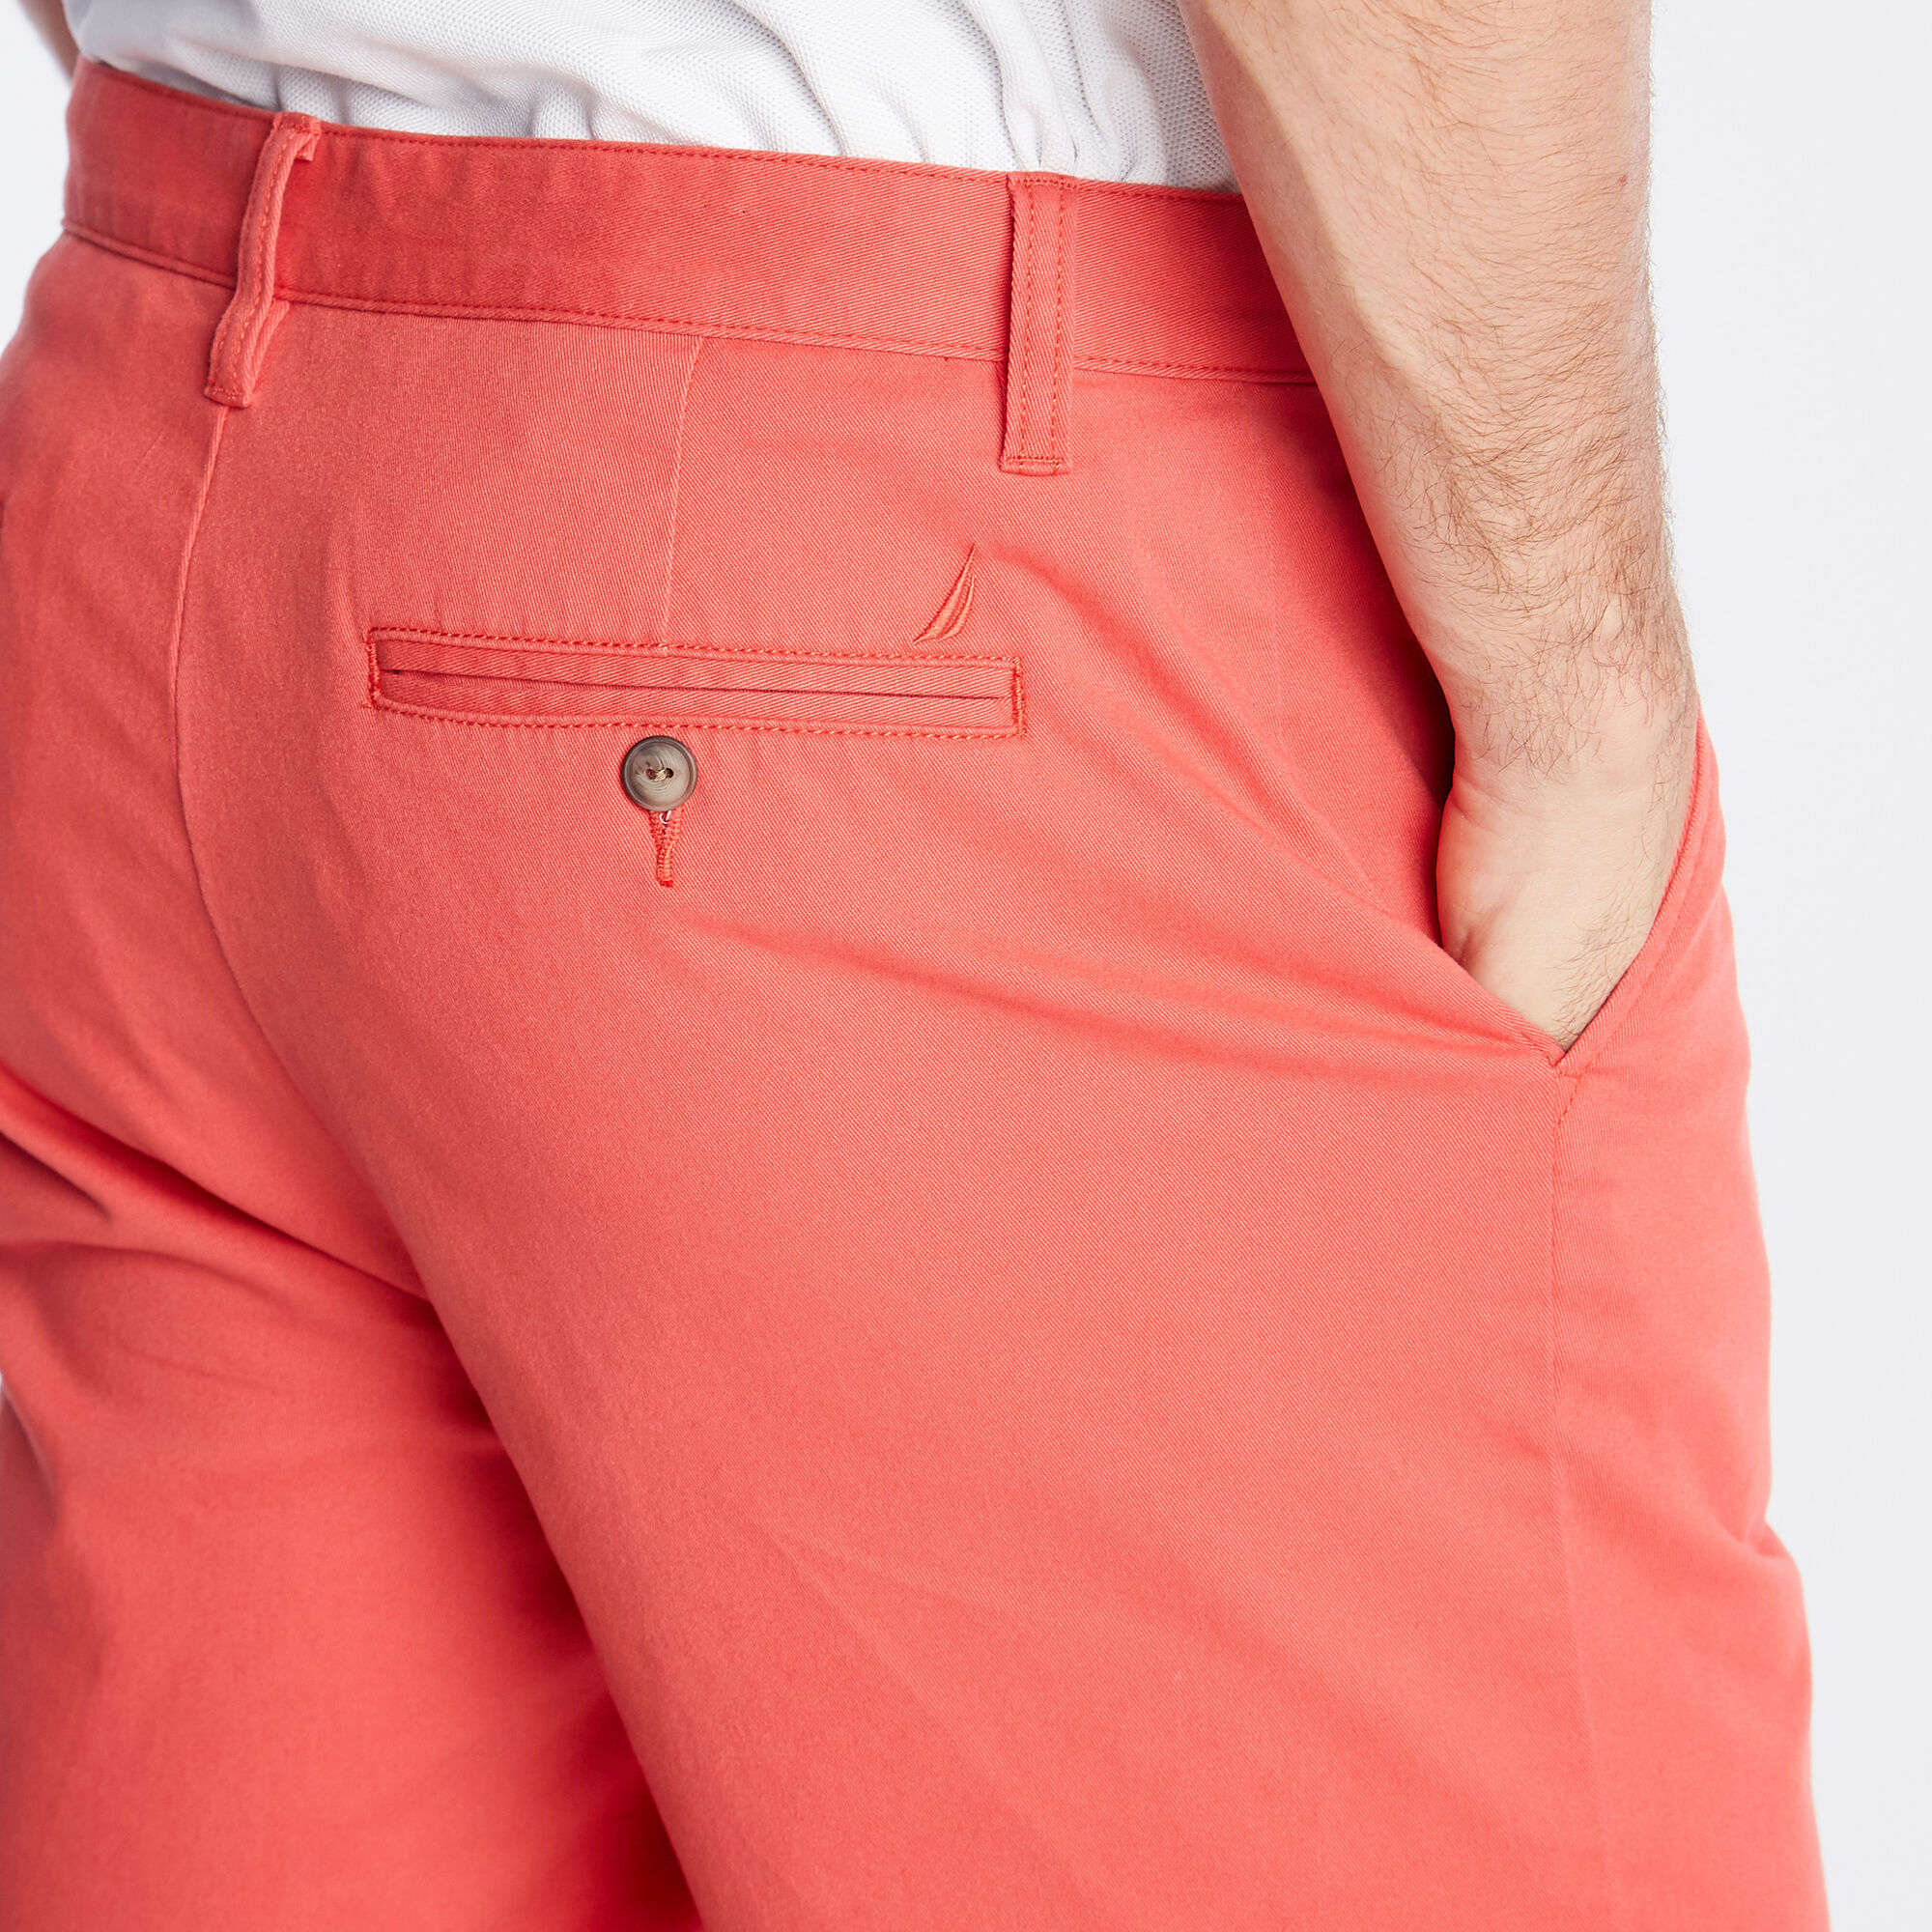 Nautica-Mens-10-034-Classic-Fit-Deck-Shorts-With-Stretch thumbnail 26